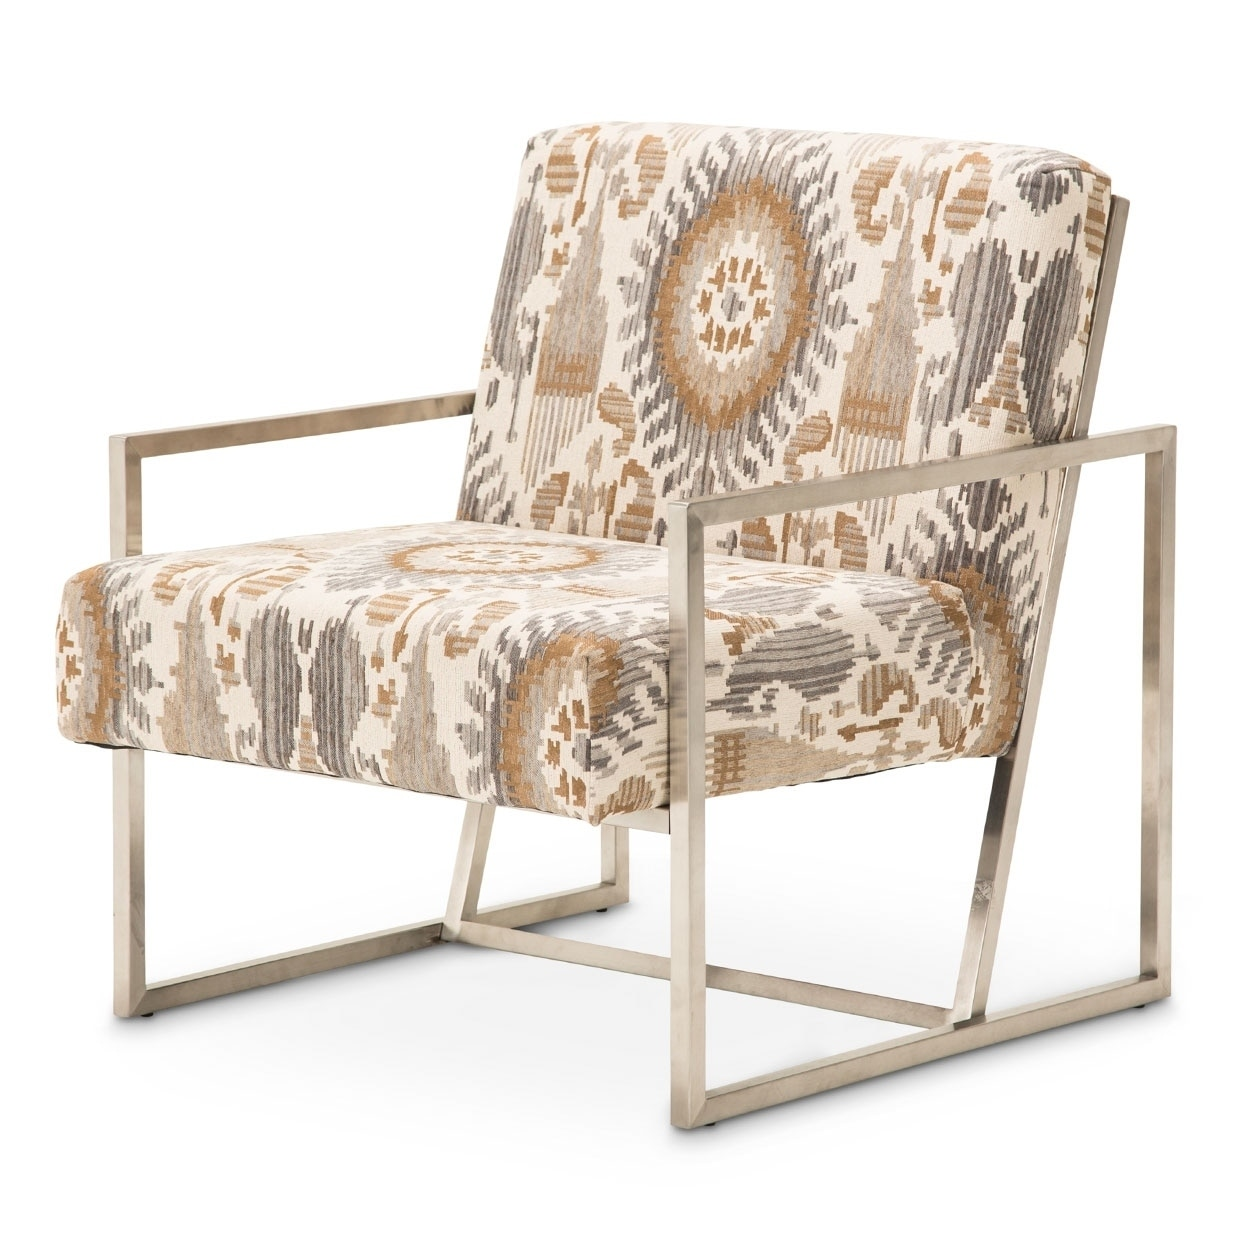 Mission Desert and Brushed Silver Accent Chair by Kathy Ireland